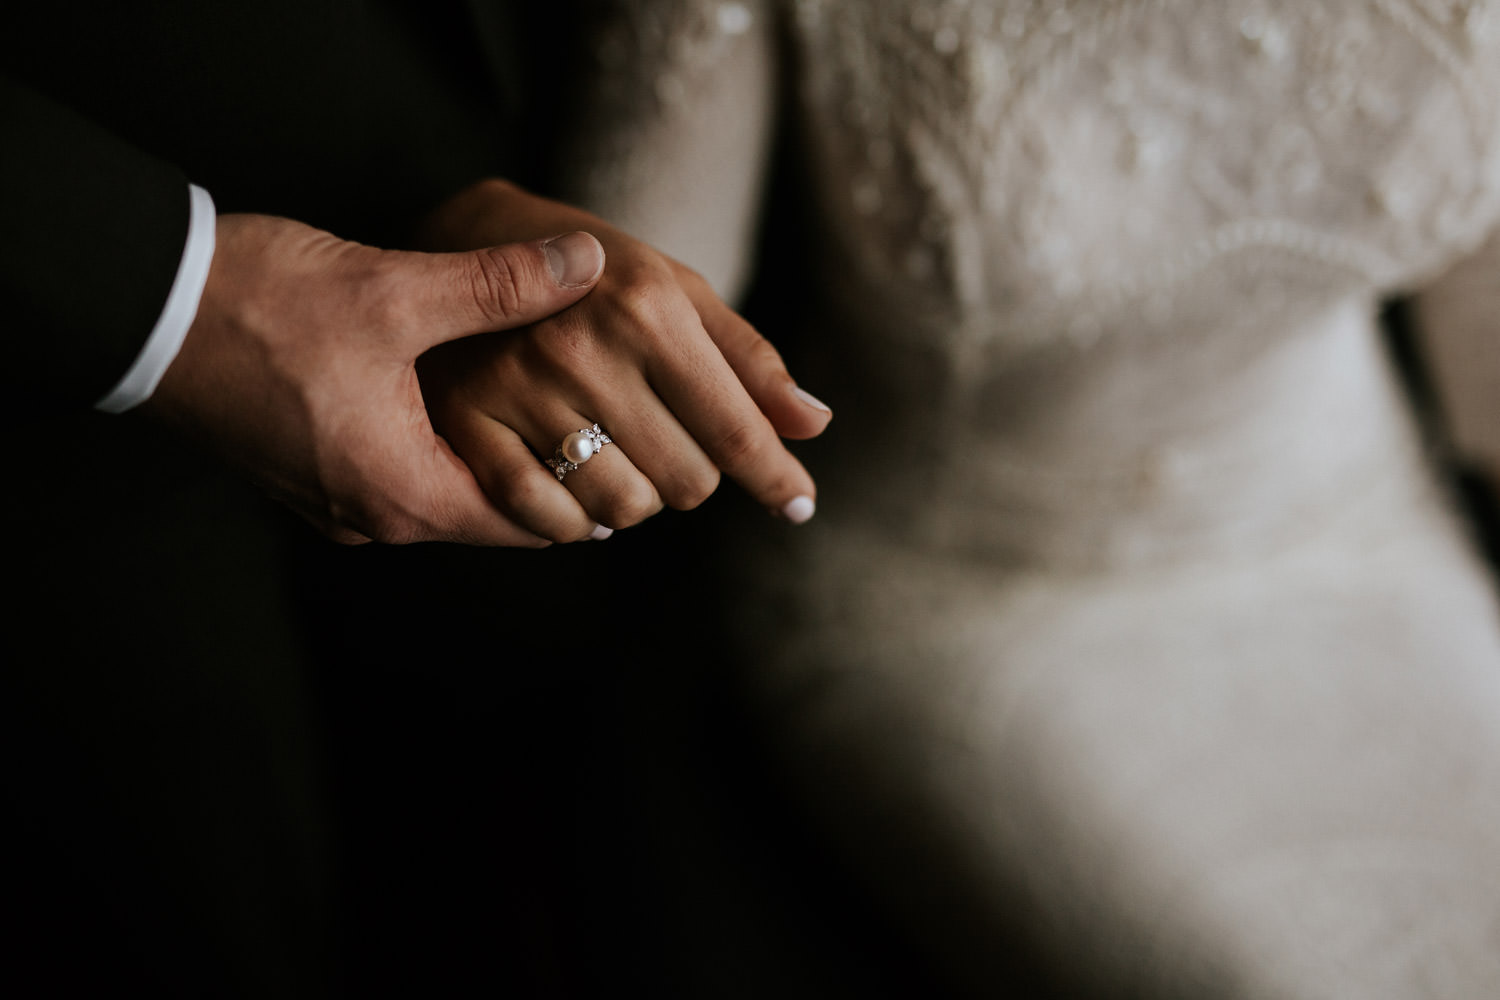 intimate photograph of the groom holding the brides hand during the wedding portrait session at the gray hotel